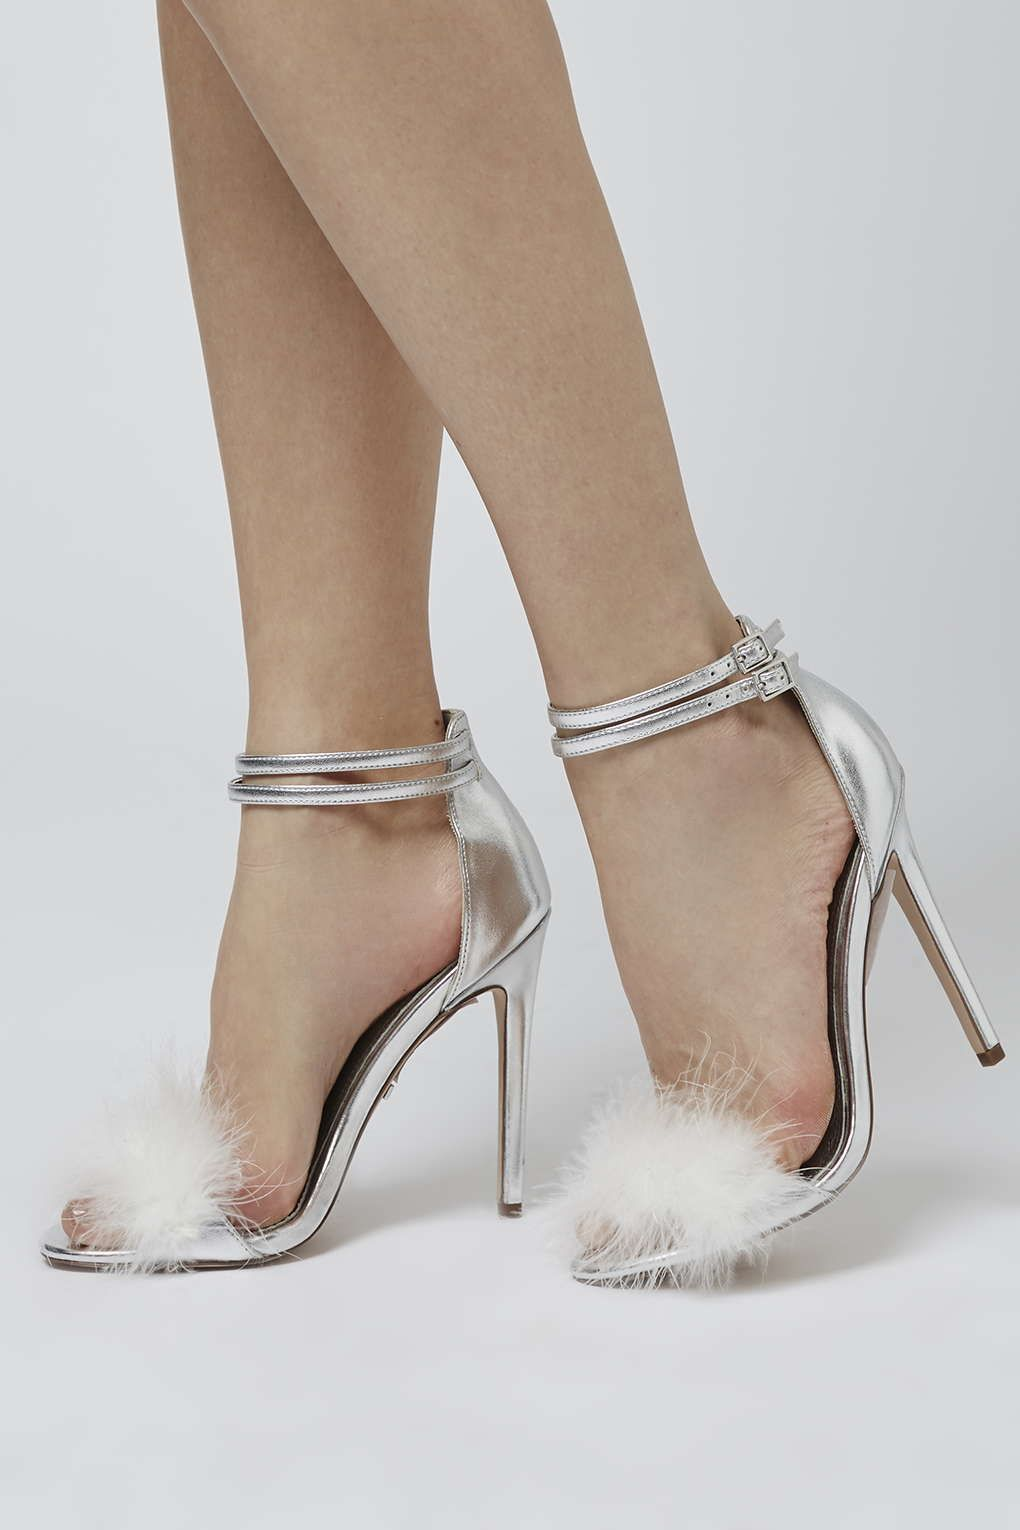 ecd250fbf9 These REESE feather sandals will add the finishing touch to any outfit. # Topshop